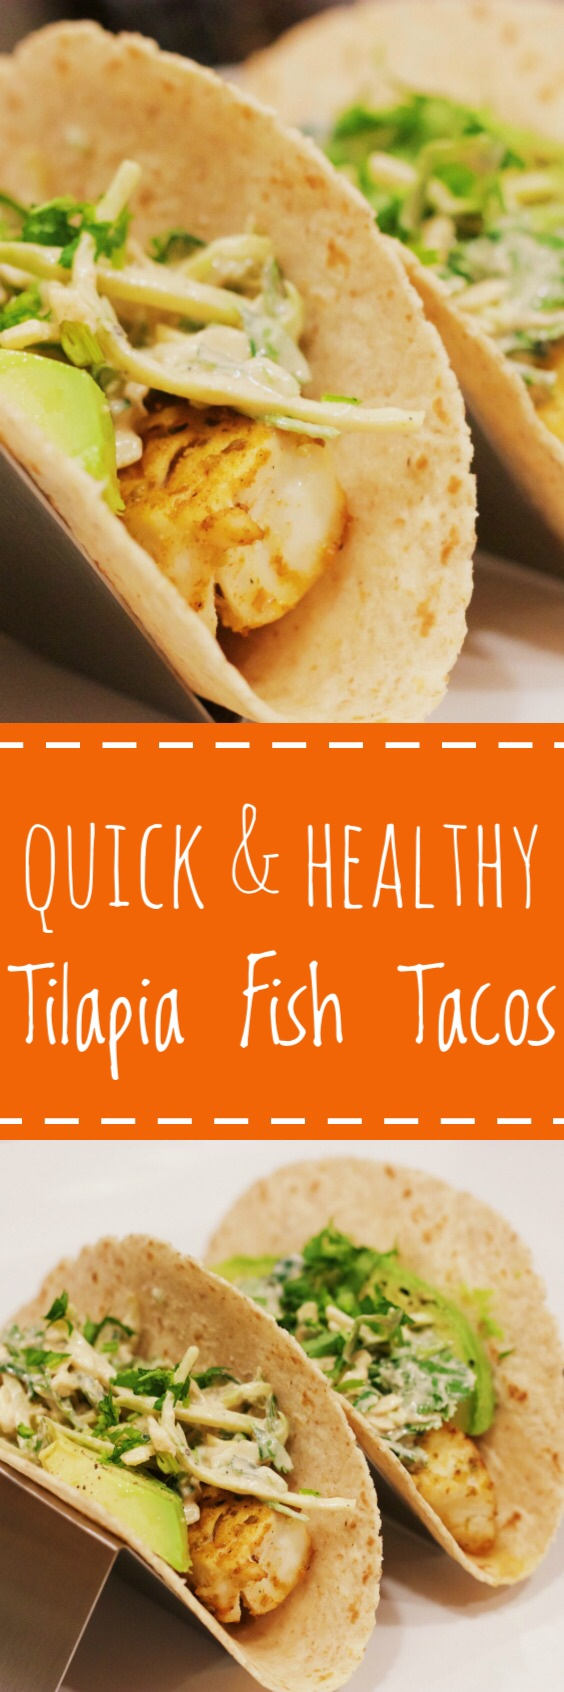 These delicious fish tacos are ready in under 30 minutes andhave less than 300 calories! They are a perfect weeknight meal!